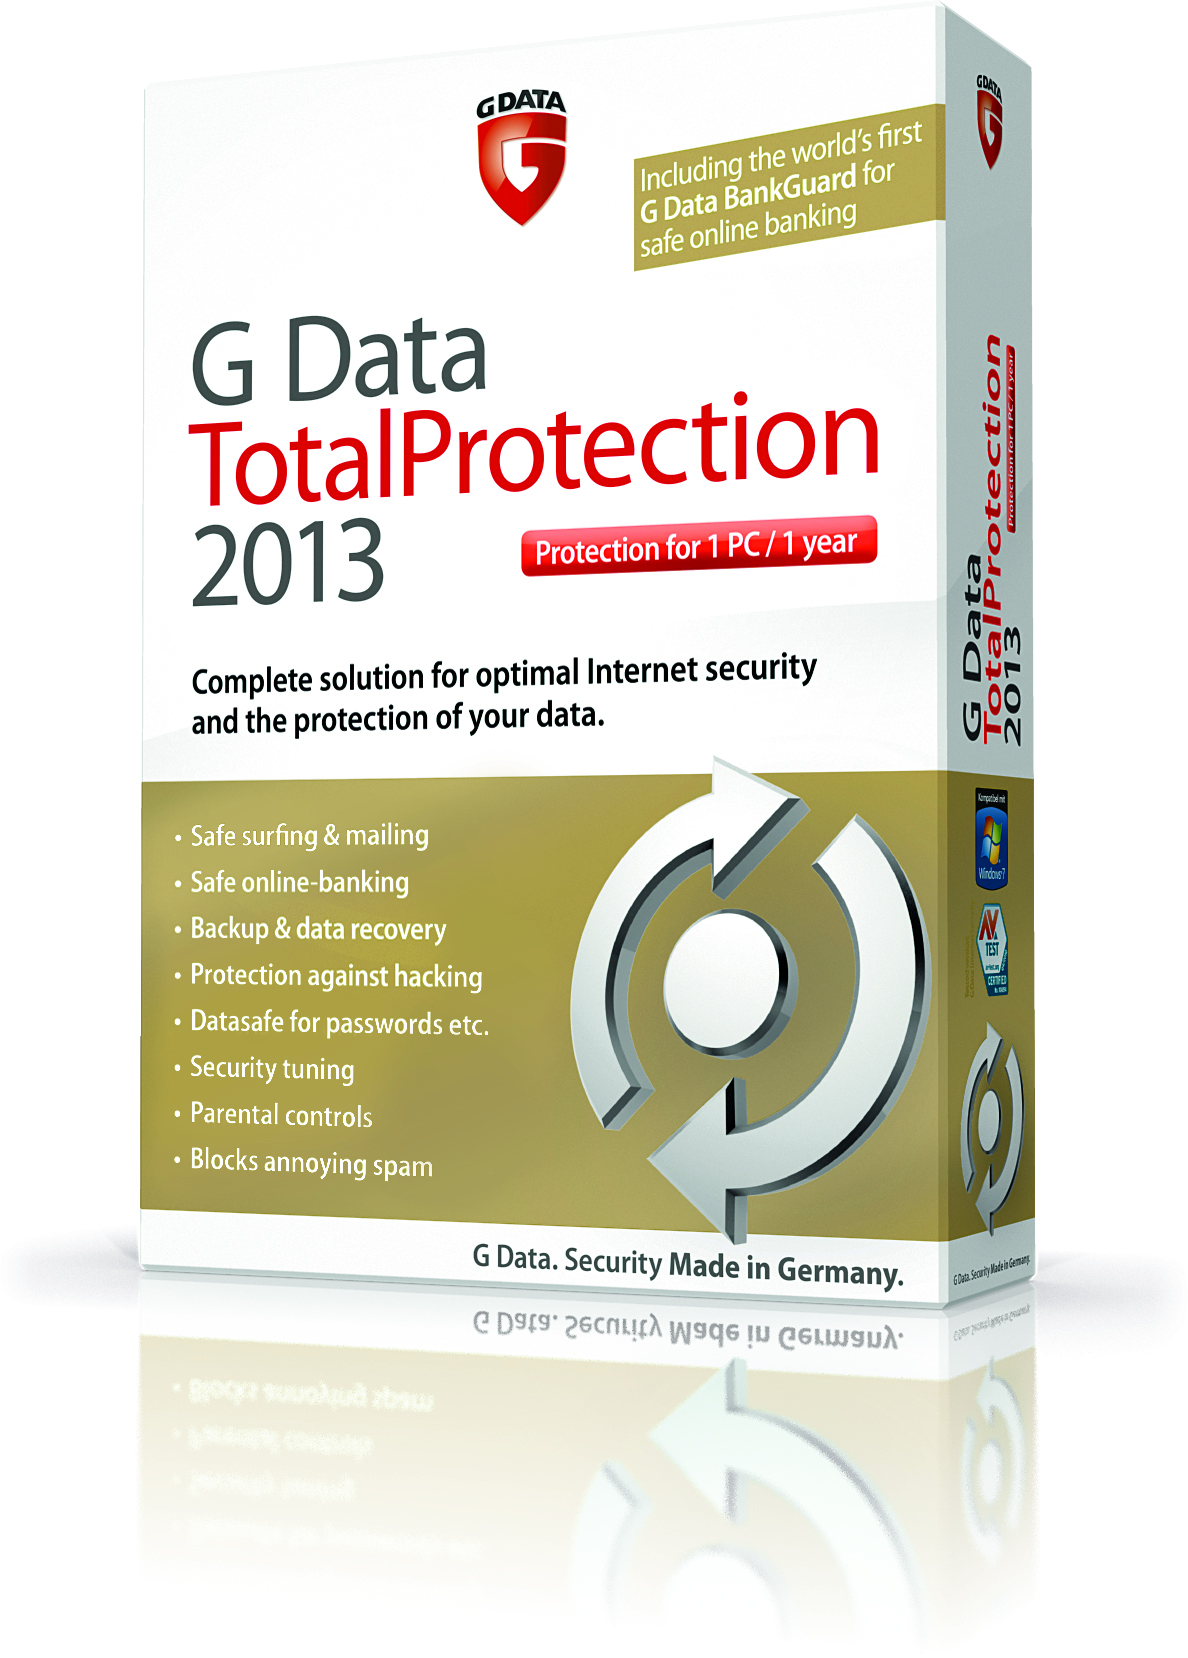 Pack_shot_-_Consumers_-_G_Data_TotalProtection_2013